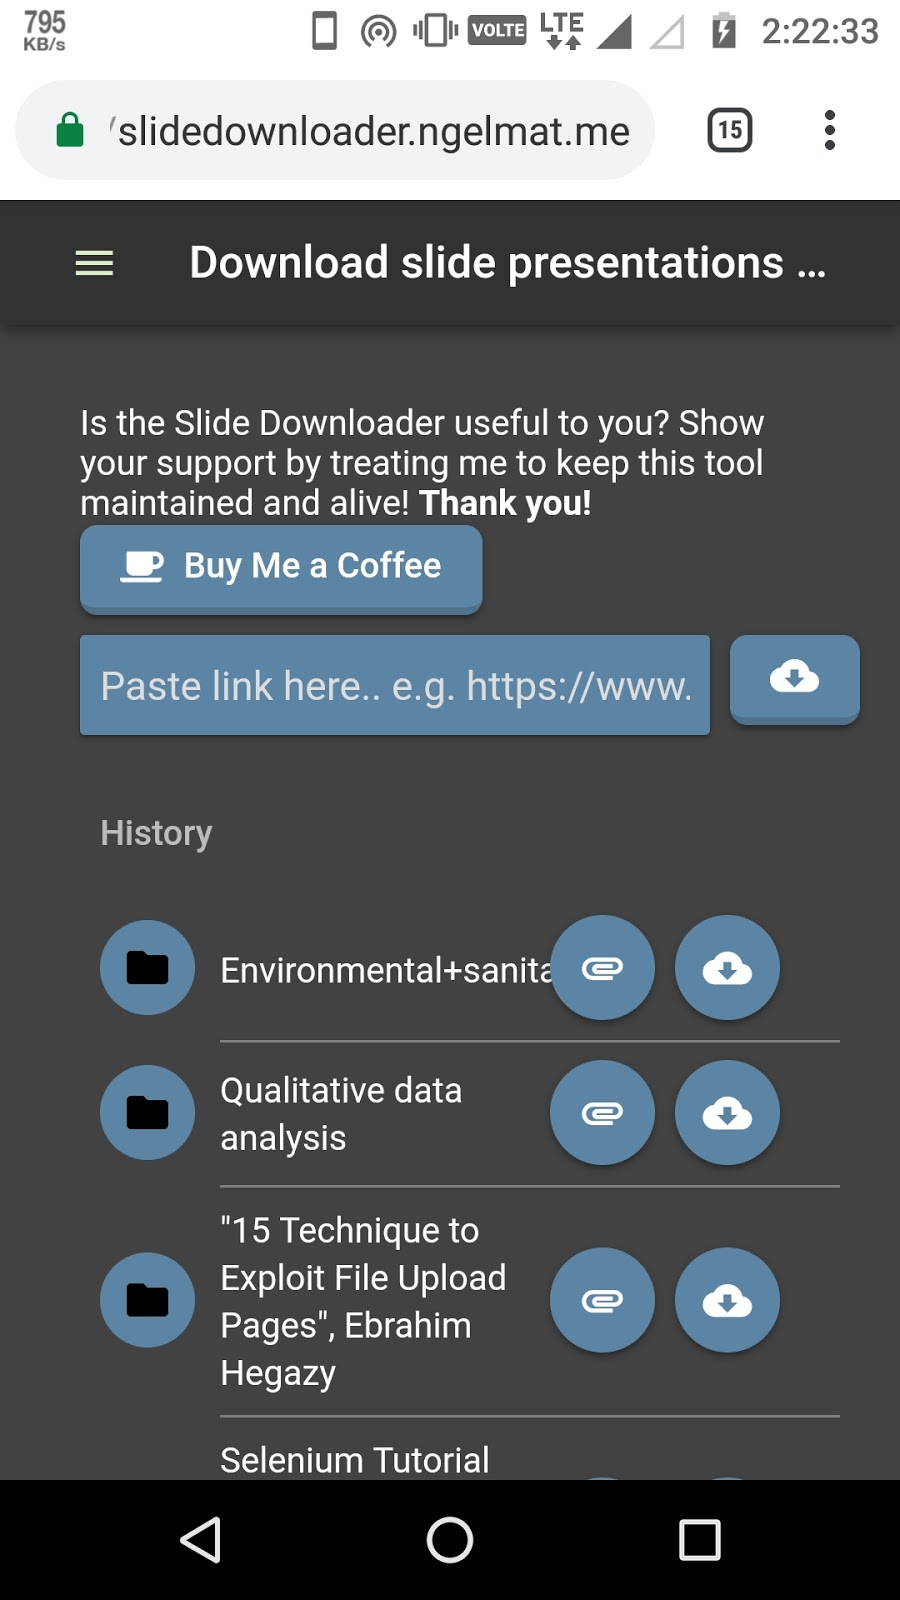 How To Download Ppt From Slideshare Without Login - Www